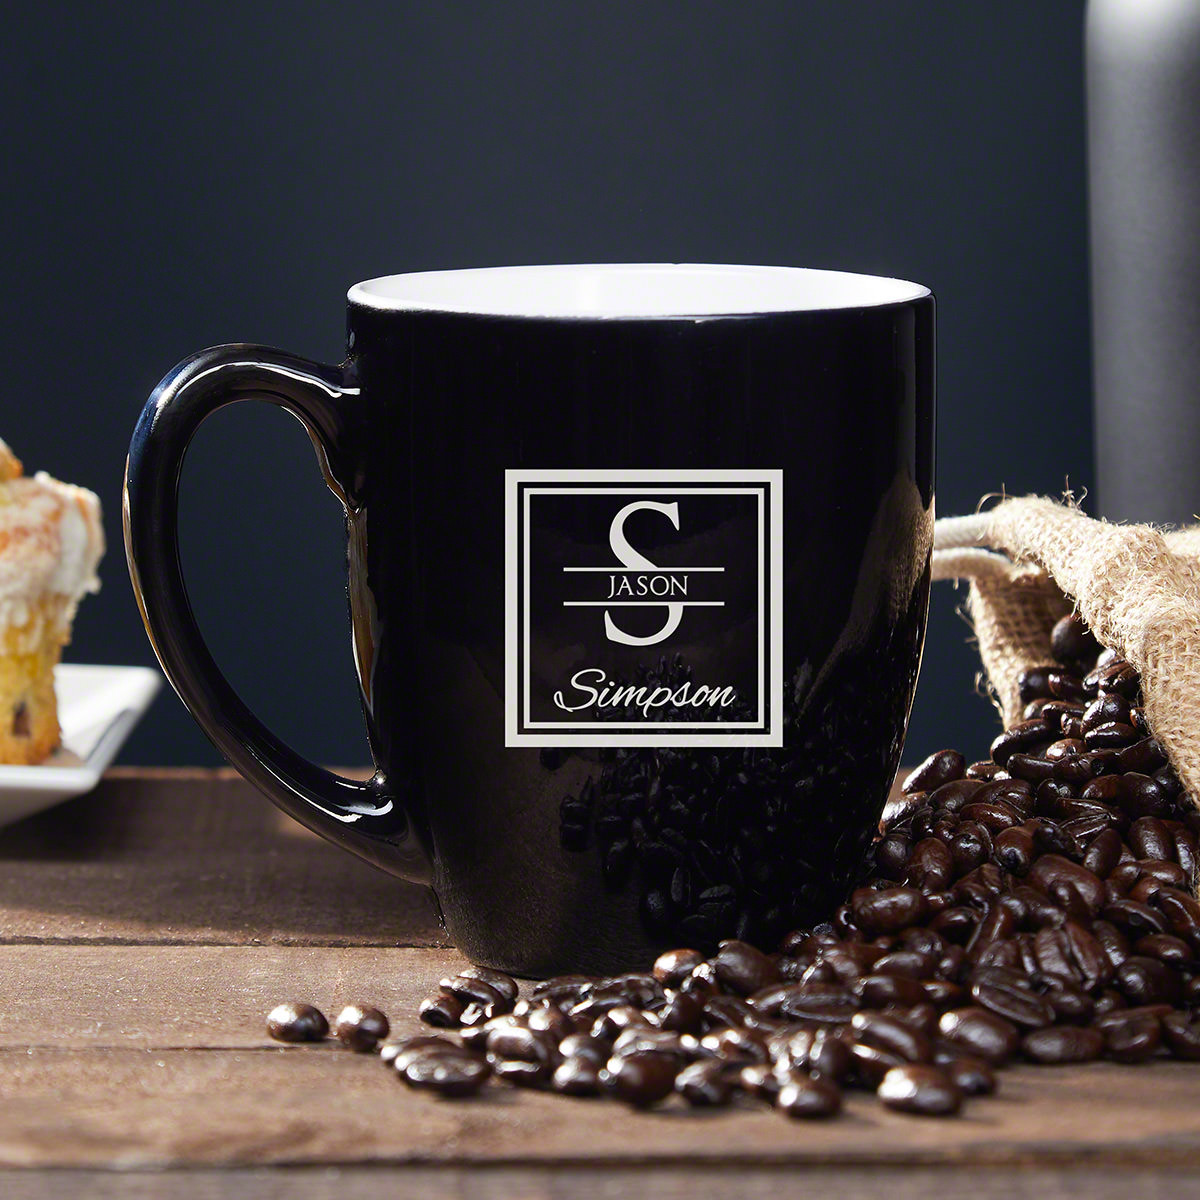 Make the morning haze easier to fight through when you reach for a personalized coffee mug. Our coffee mug will be there when you need caffeine to power through your day. It's great for coffee and tea. Engraved with the initial, first name, and last nam #mug